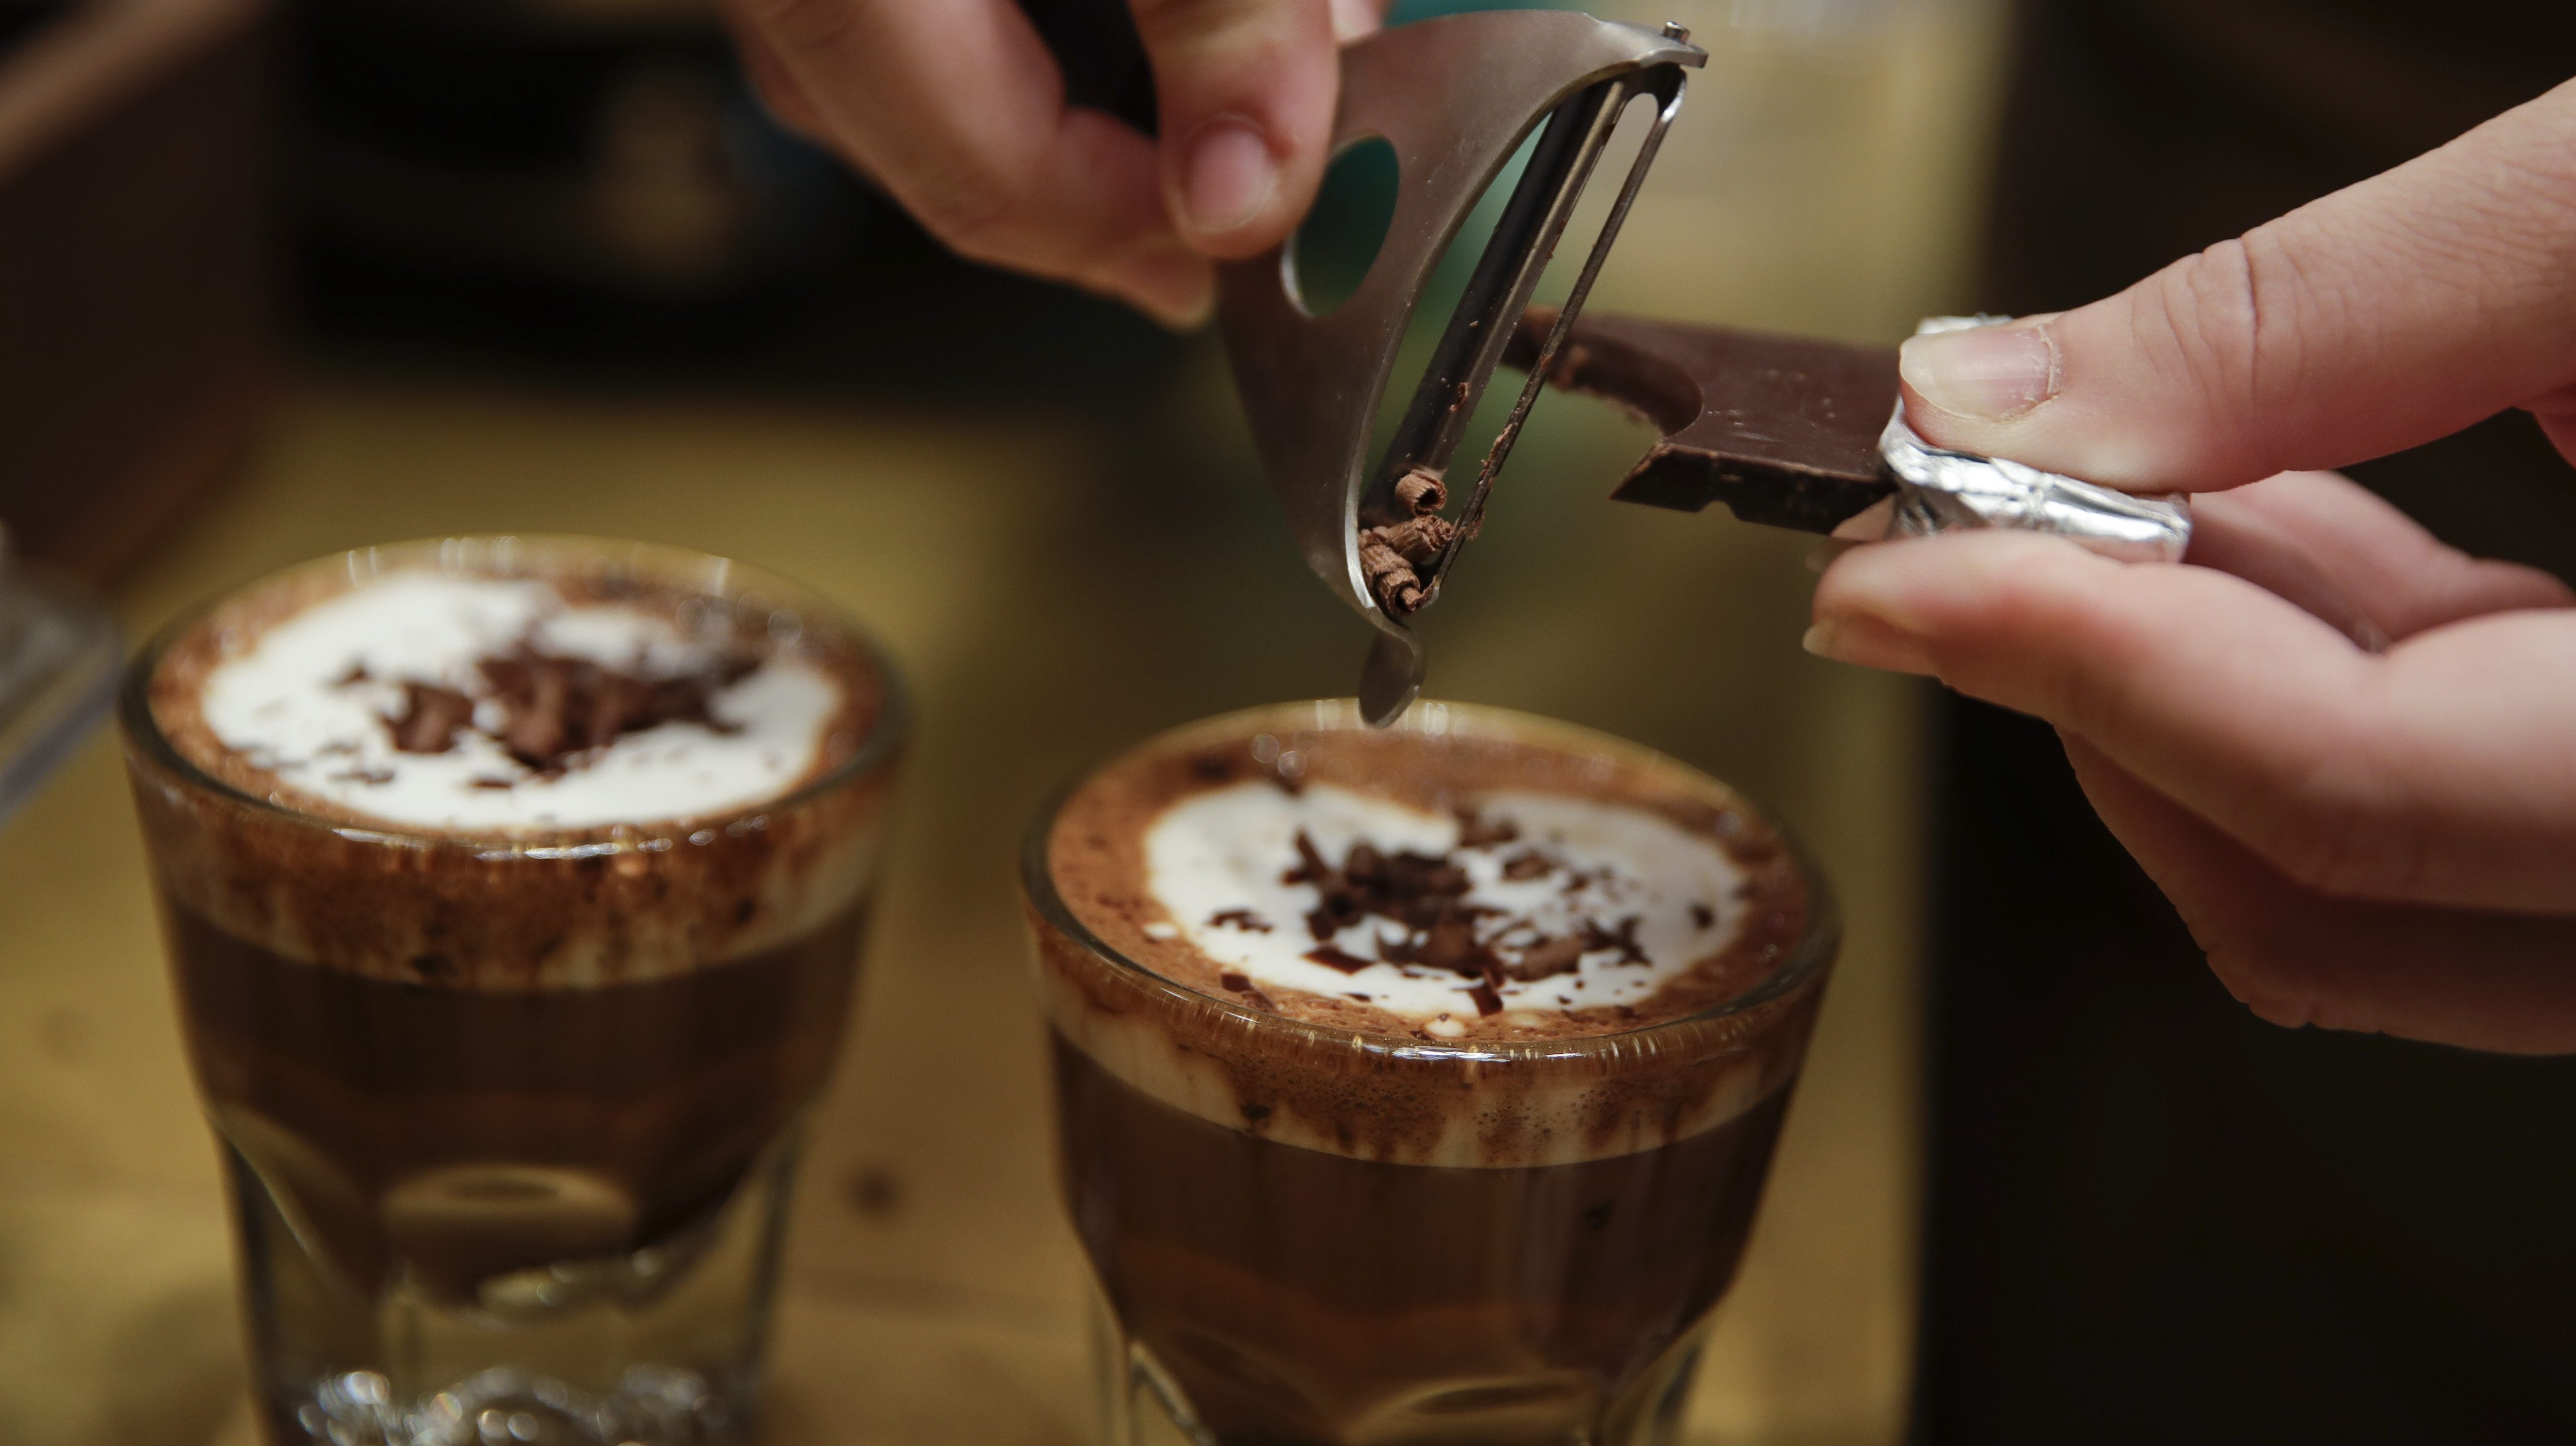 Thinking about coffee may improve your focus, study says